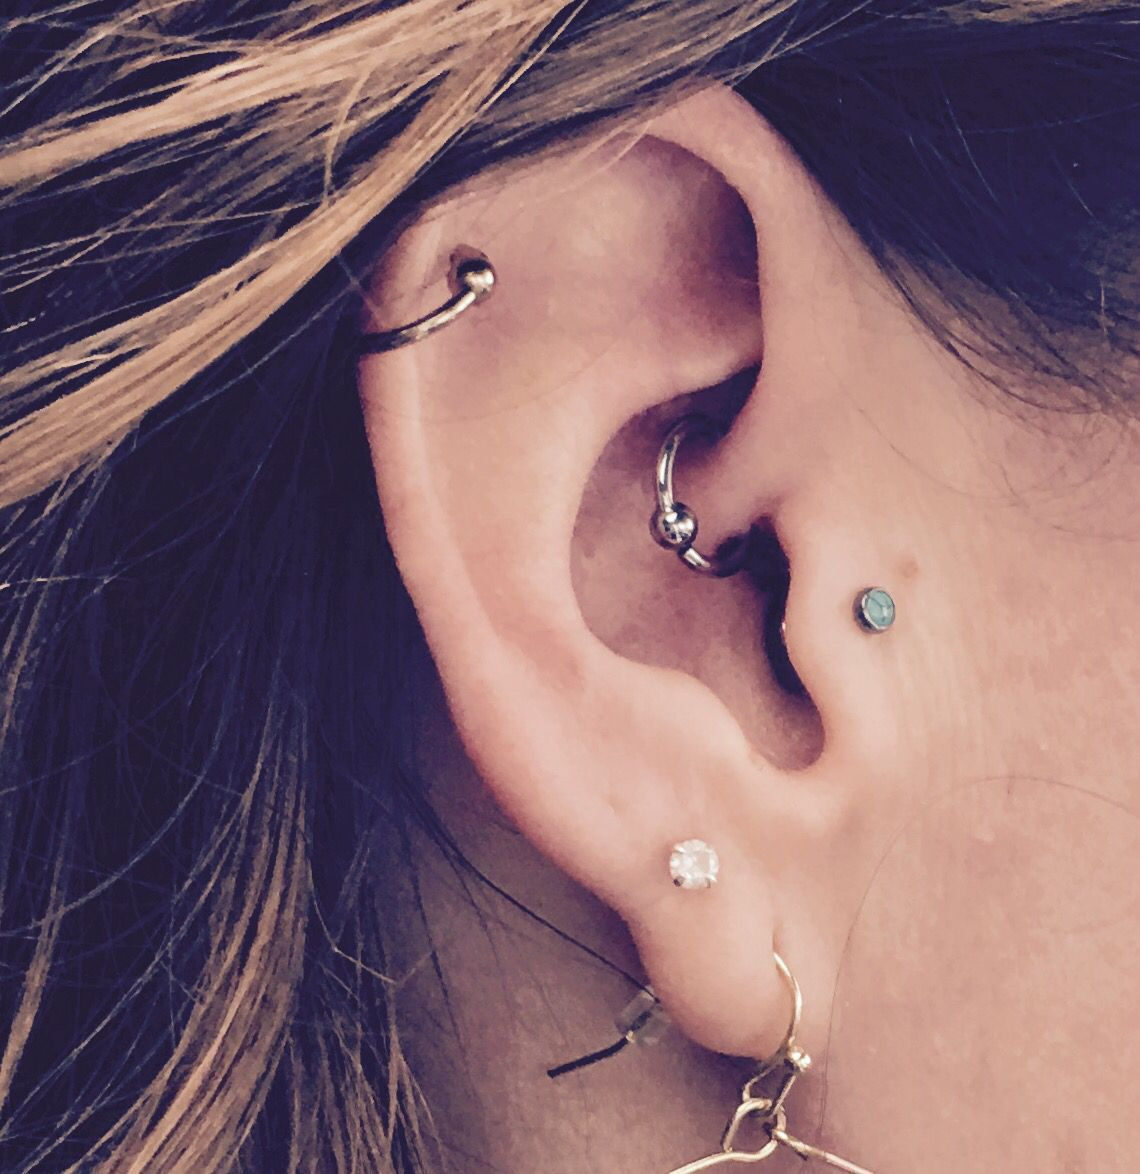 daith ear piercing jewelry daith tragus and helix piercing piercings 3630